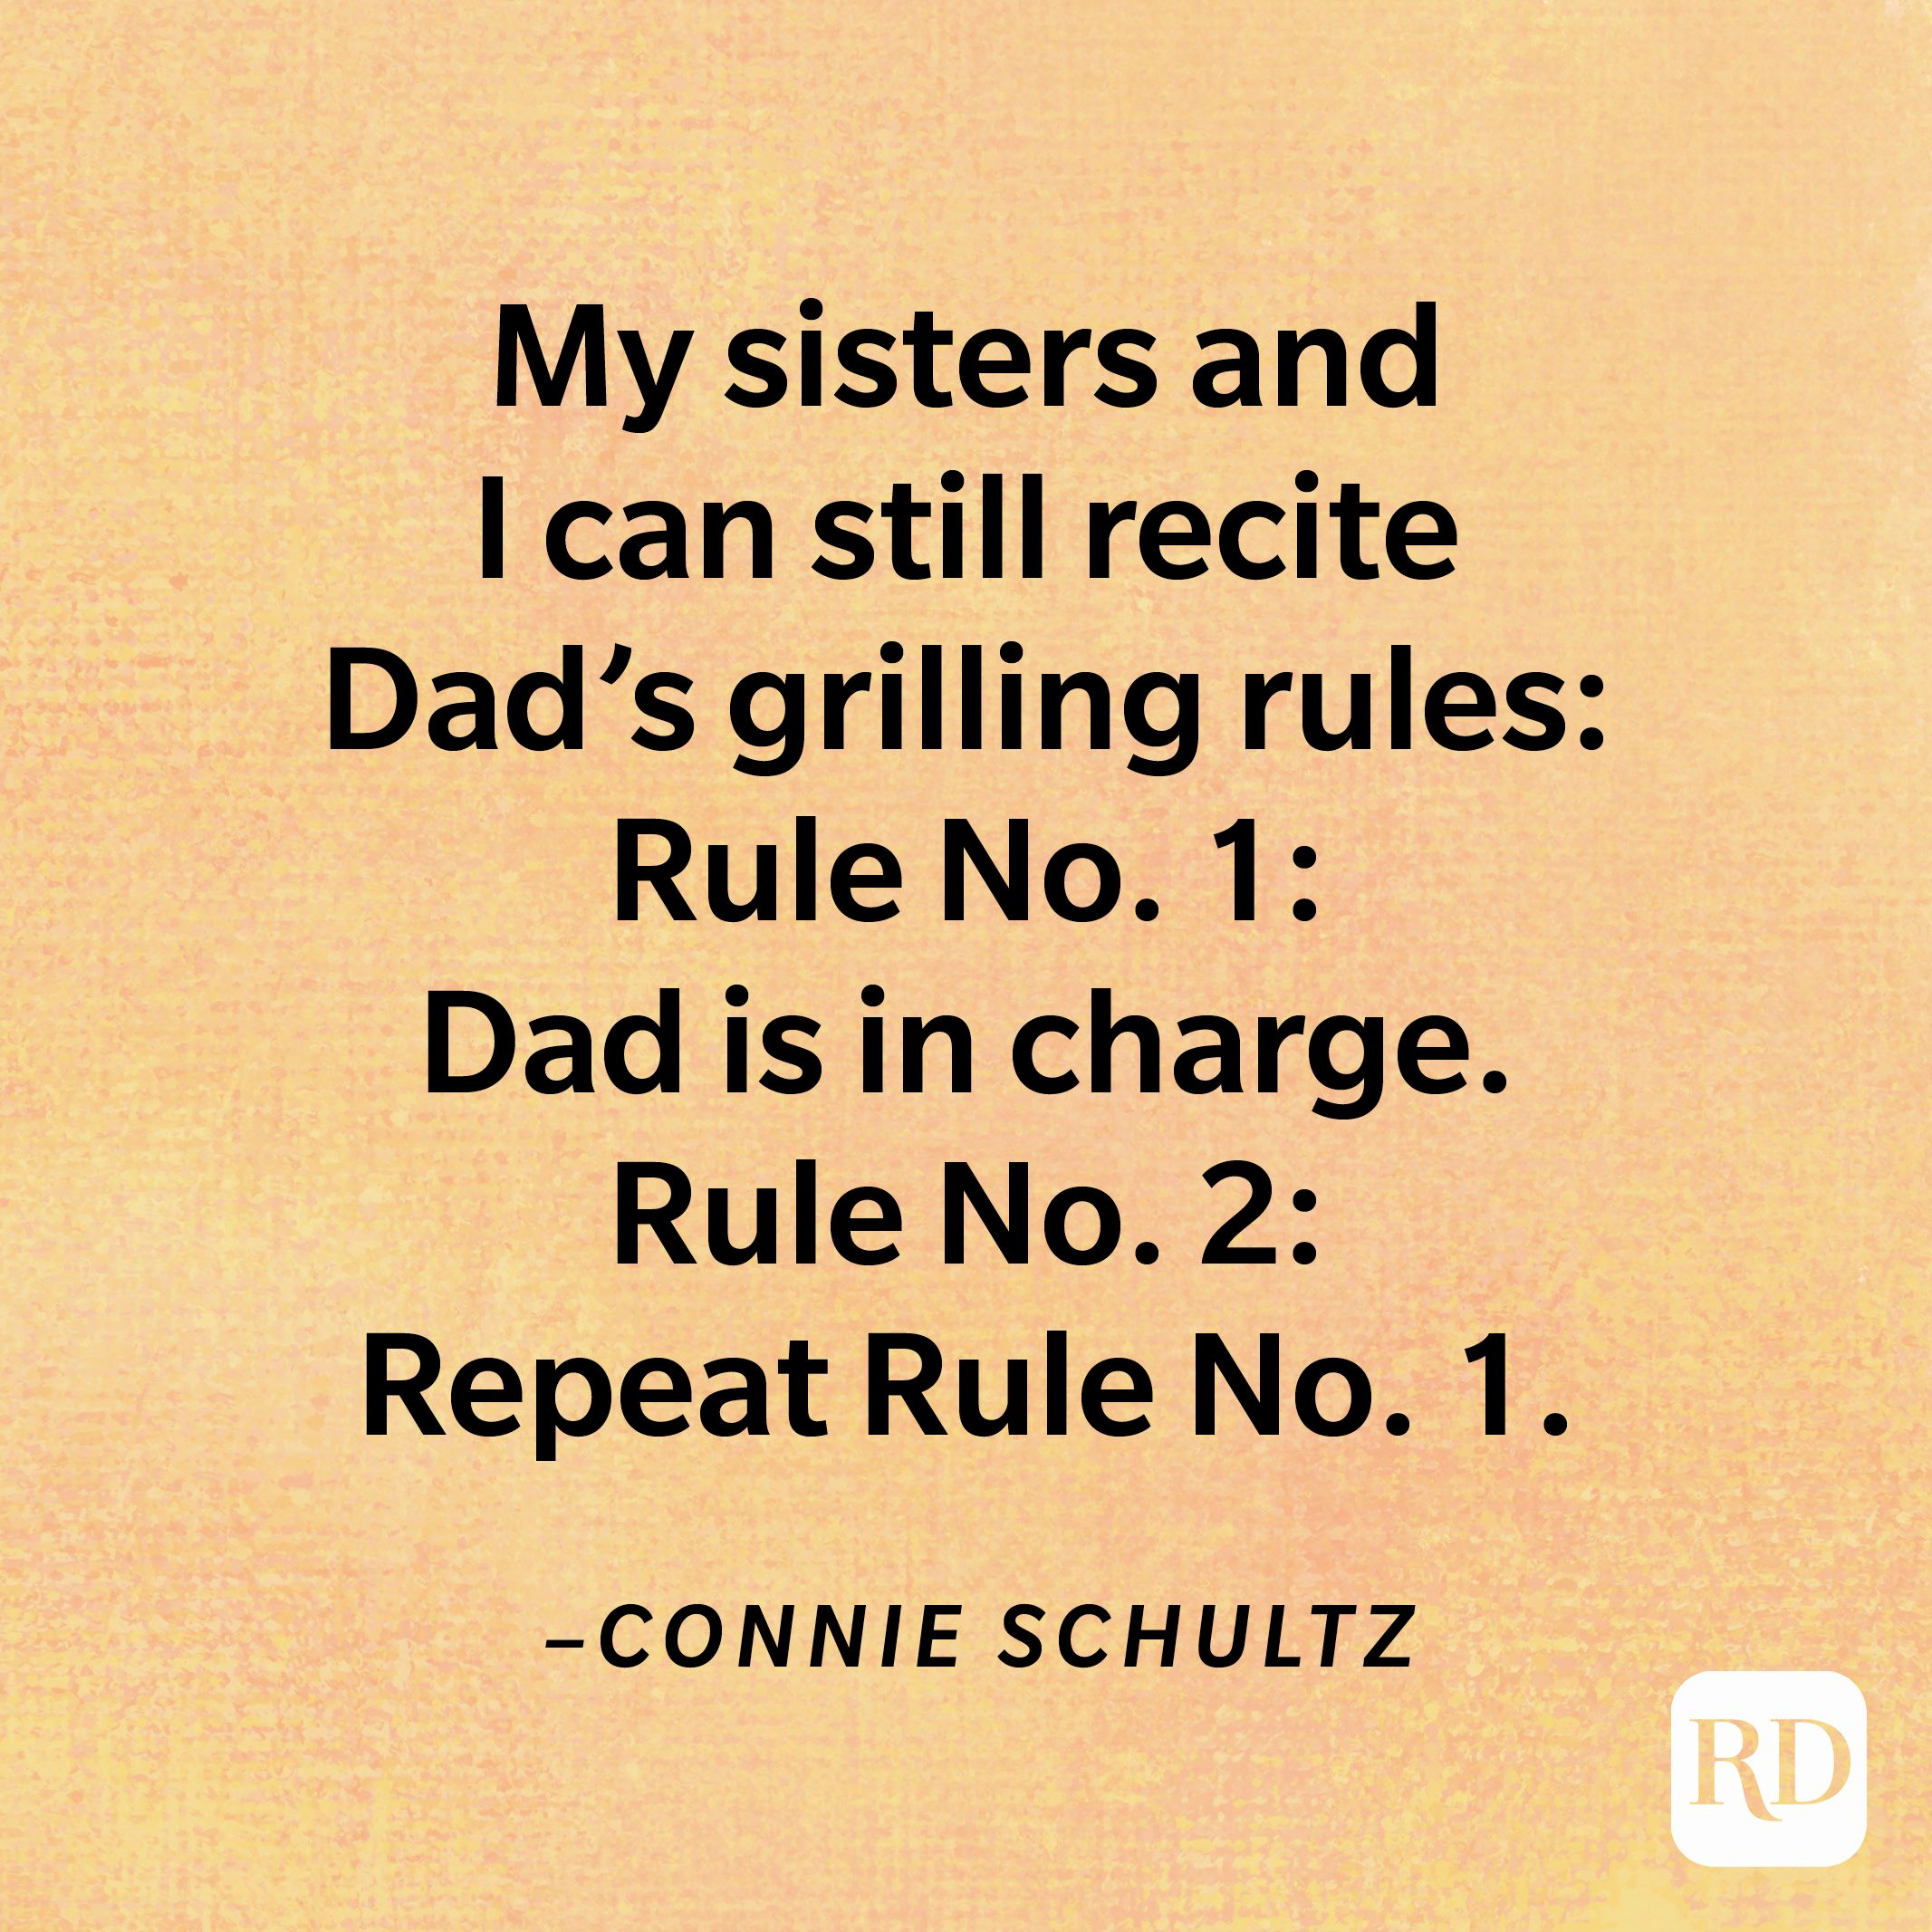 """""""My sisters and I can still recite Dad's grilling rules: Rule No. 1: Dad is in charge. Rule No. 2: Repeat Rule No. 1.""""—Connie Schultz"""